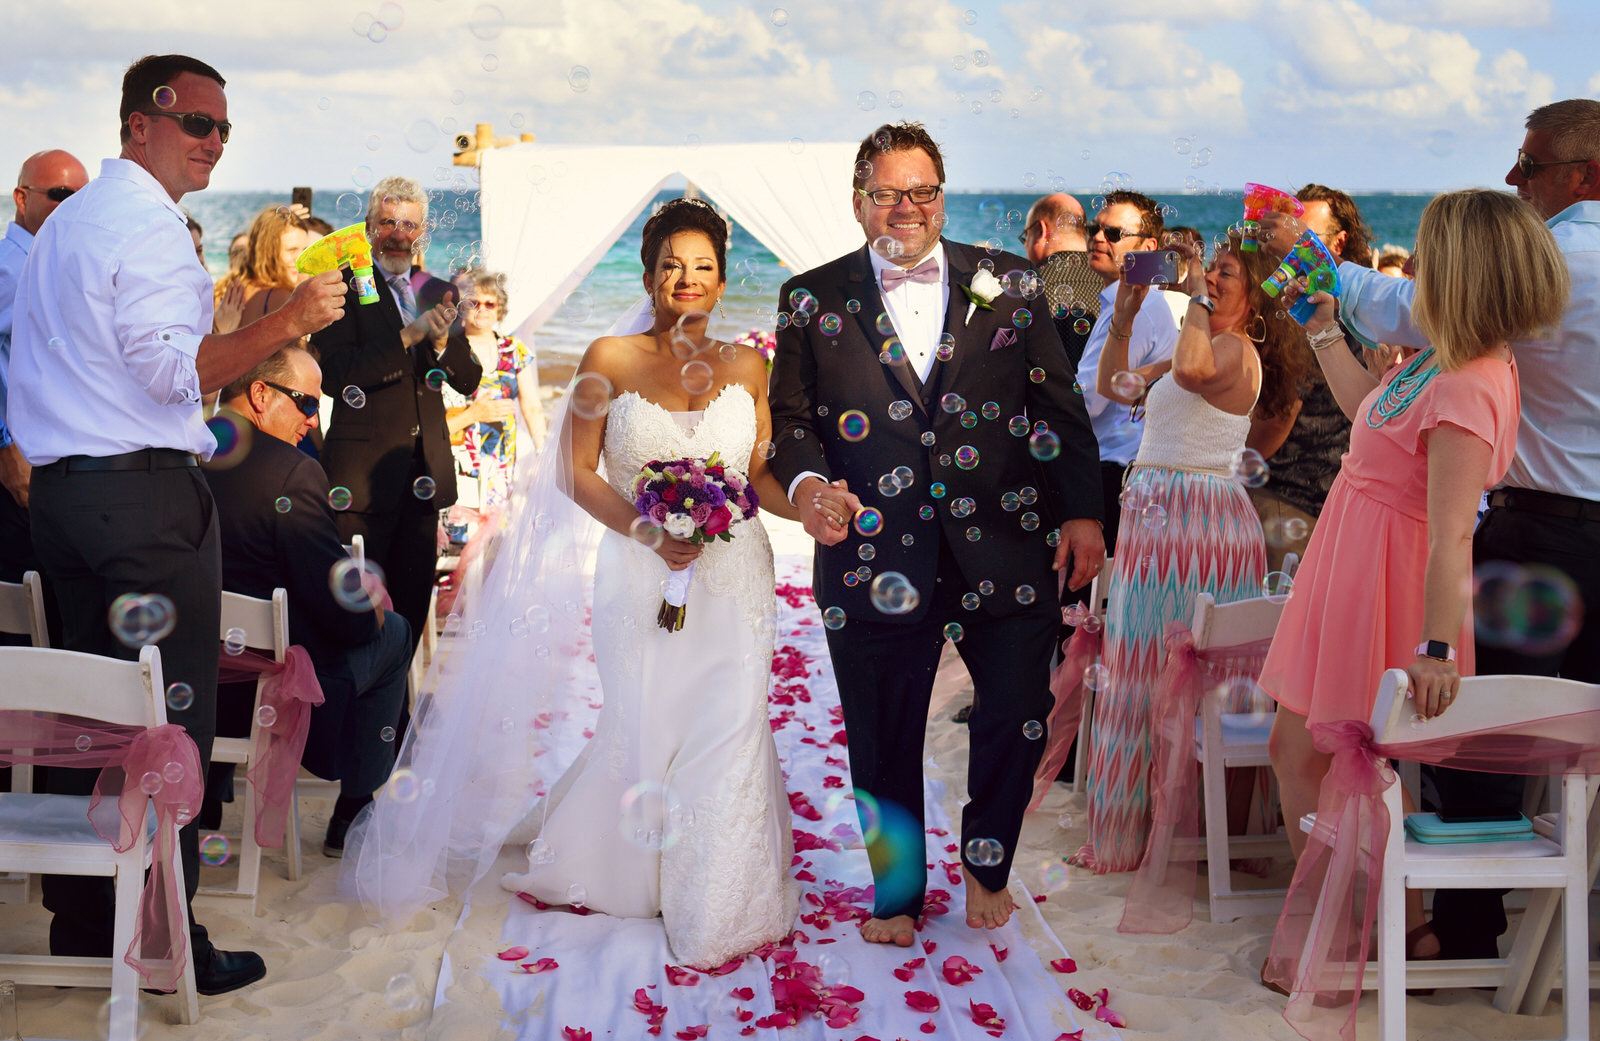 Bride and groom sunset portraits on infinity dance floor. Now Sapphire wedding by Martina Campolo Photography